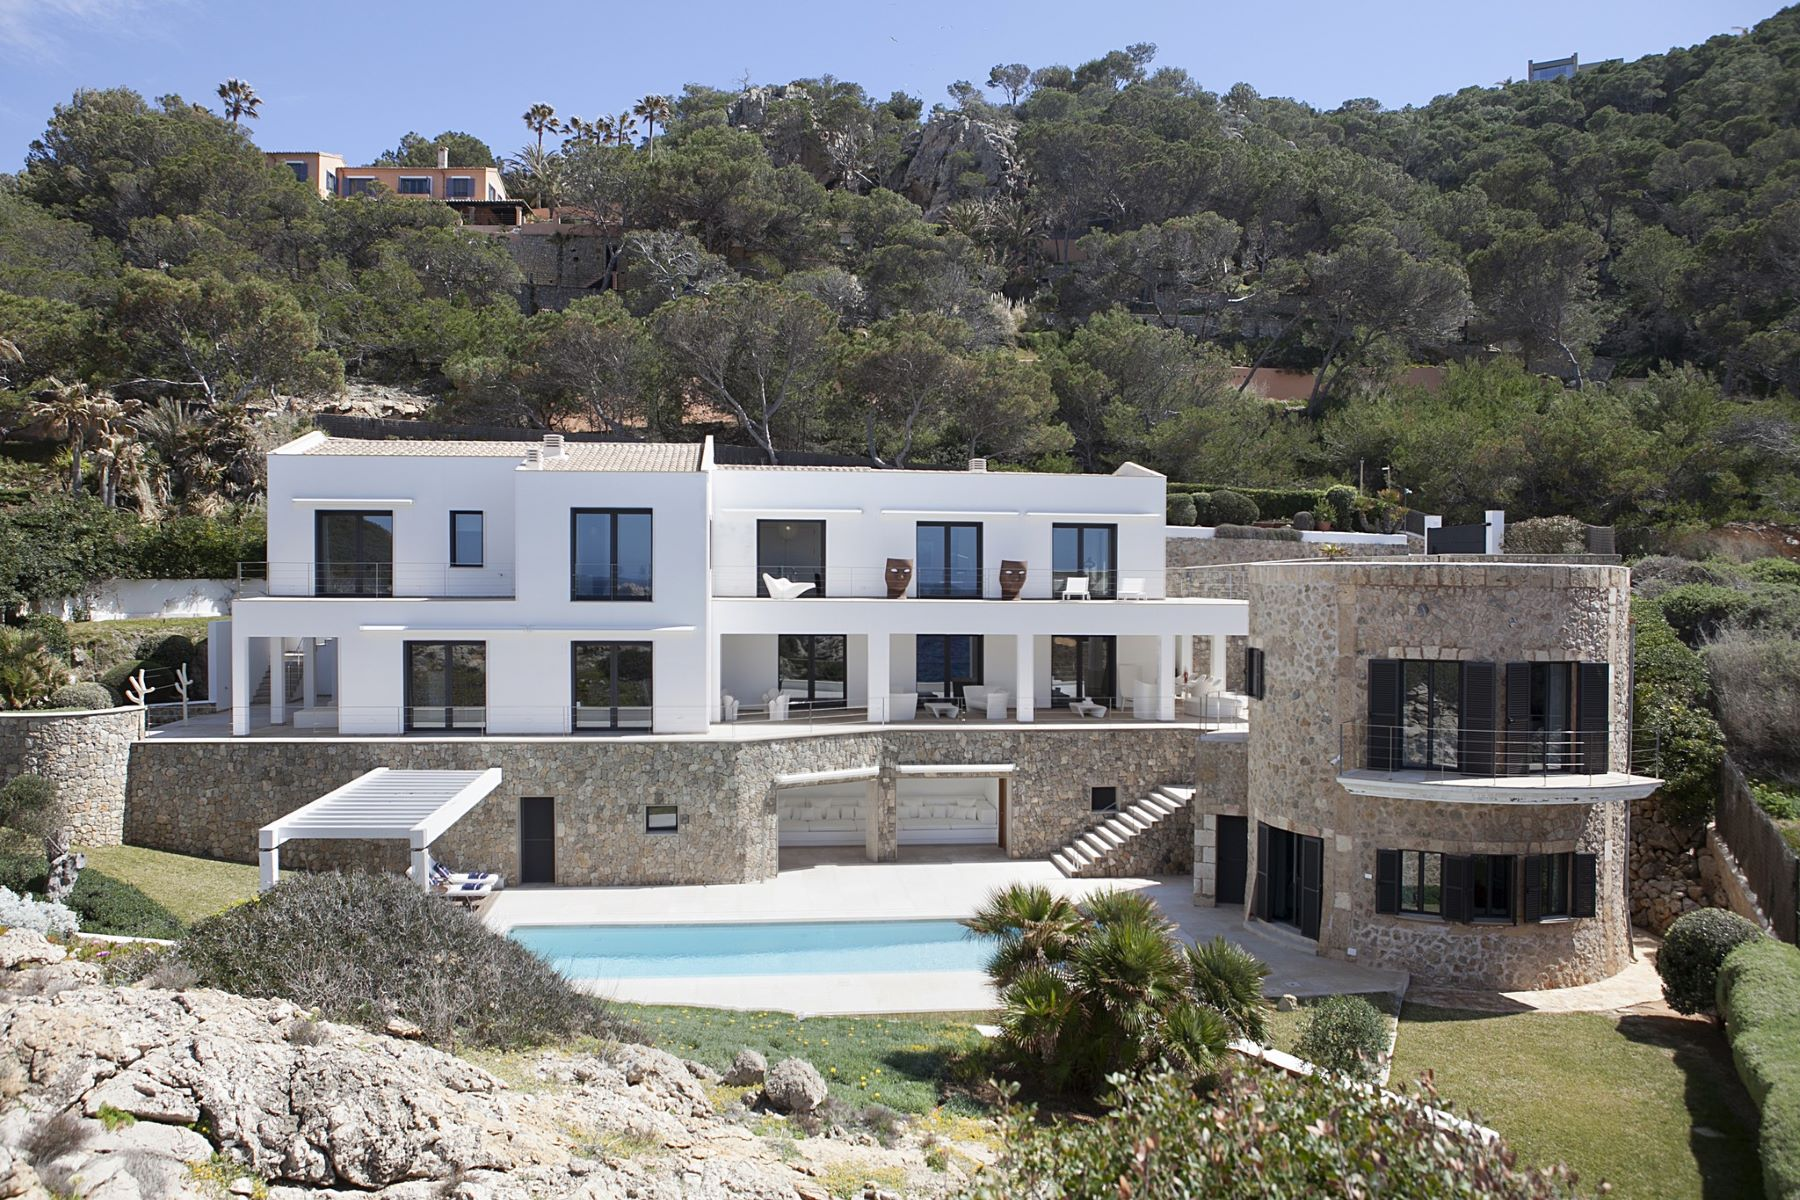 Single Family Homes for Sale at Sea front villa in Andratx Port d Andratx, Balearic Islands Spain